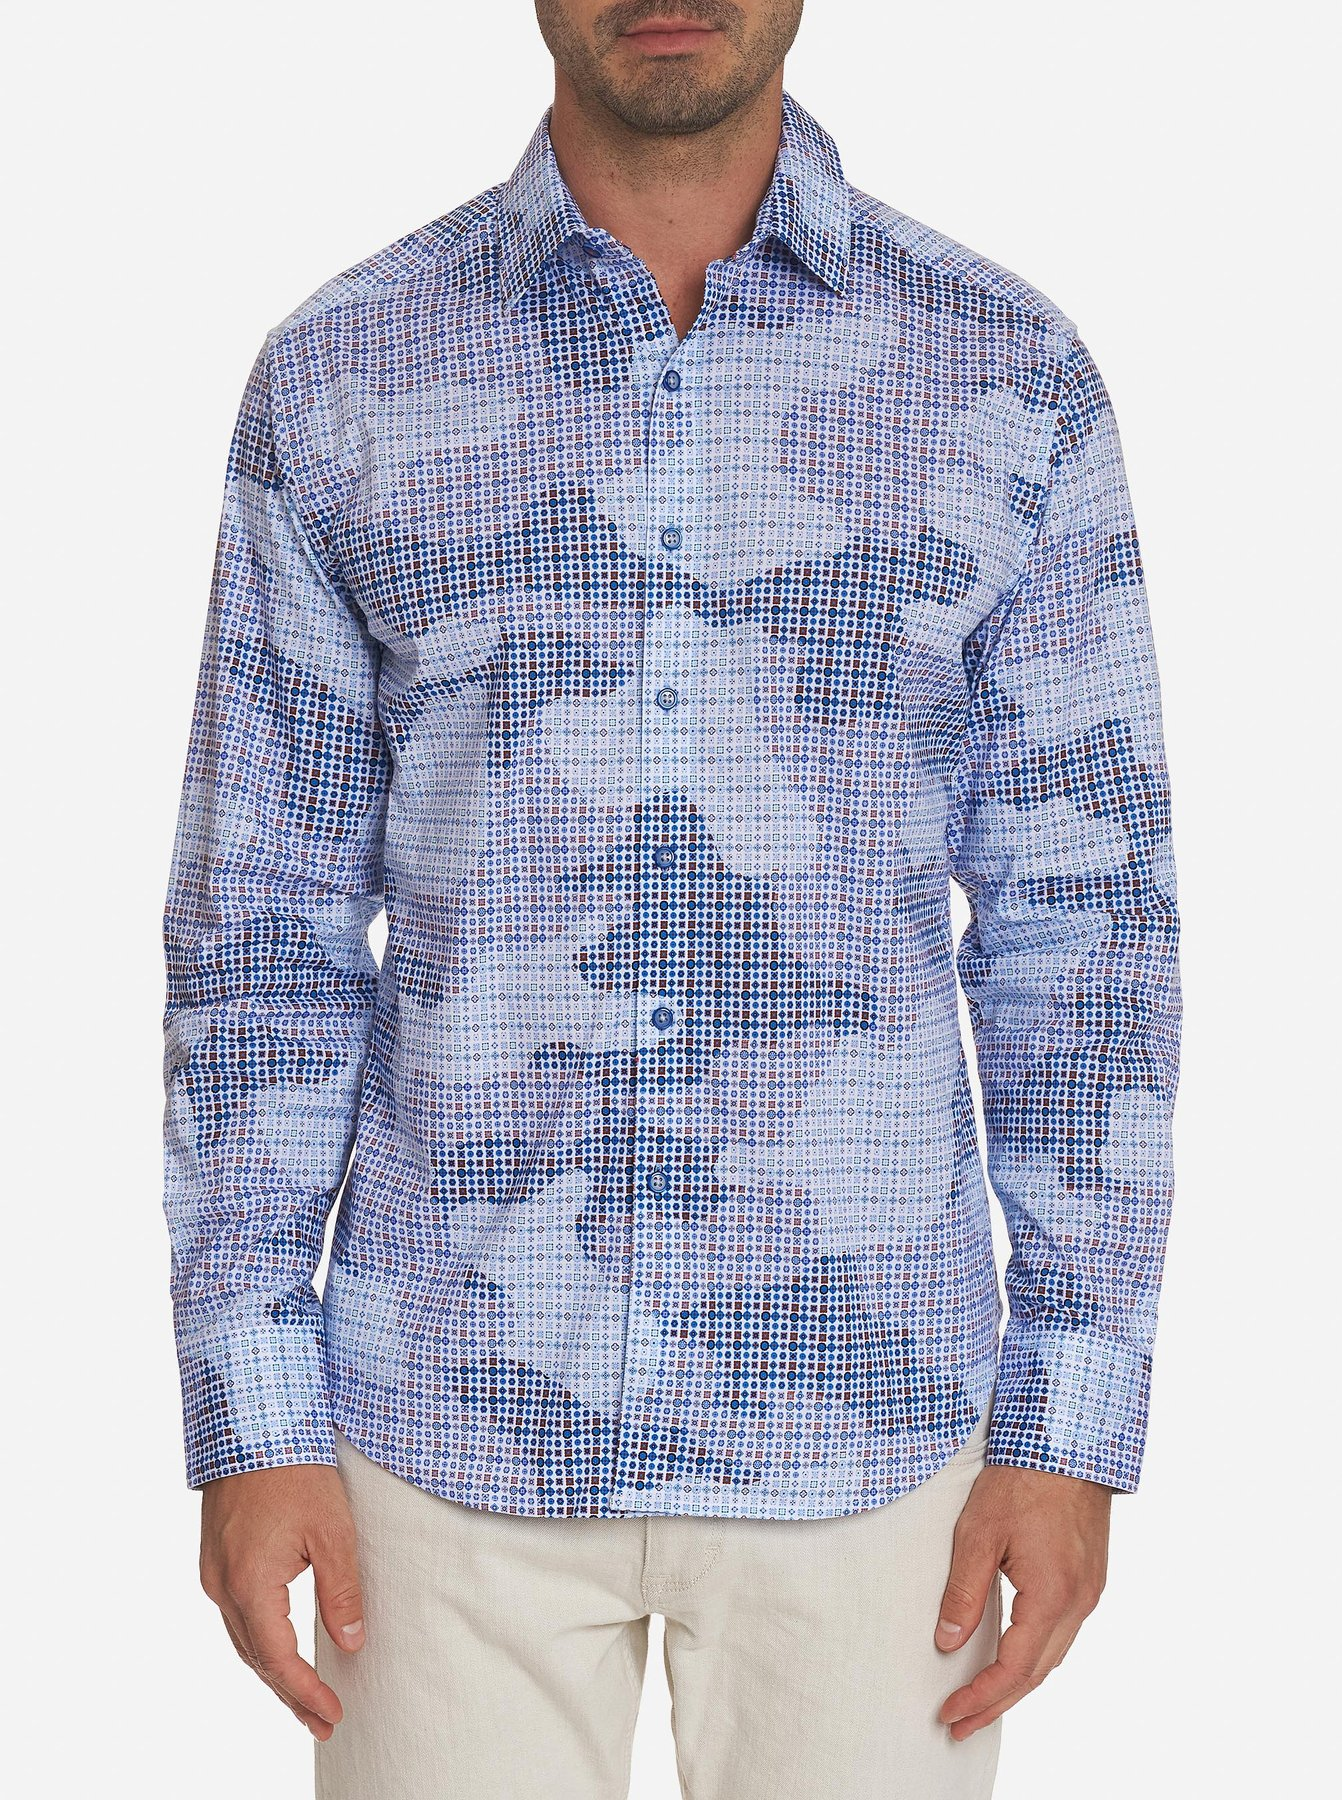 Robert Graham Courageous Sport Shirt Blue stock